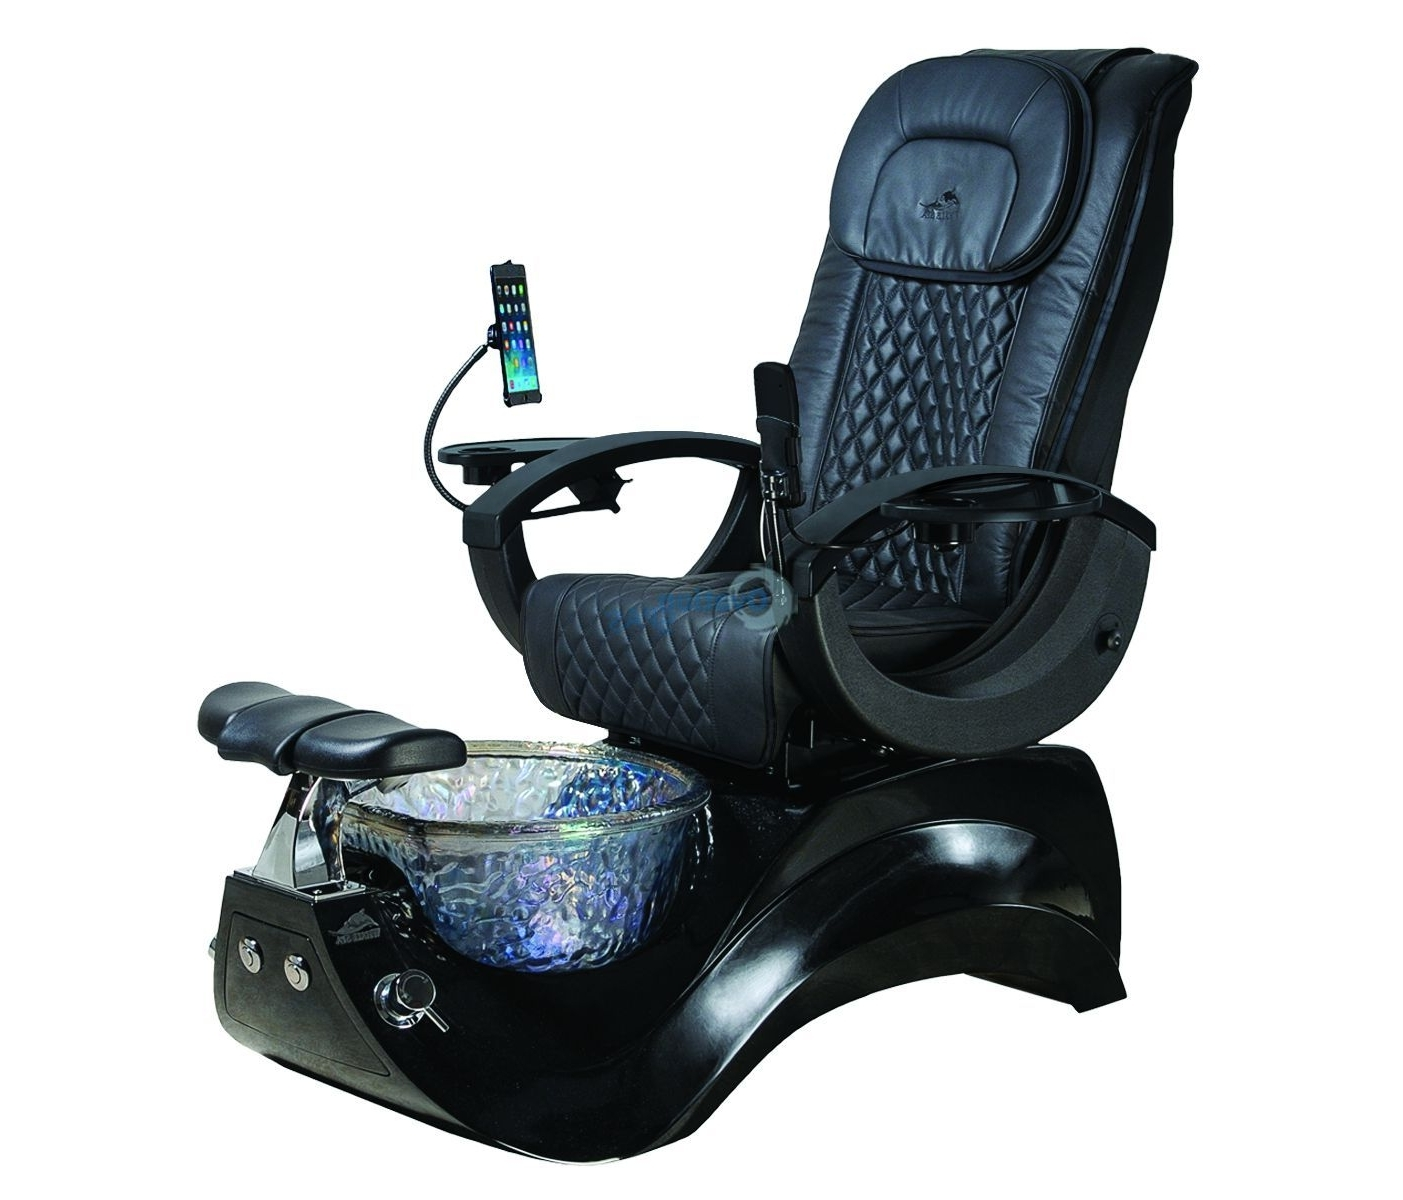 Favorite Sofa Pedicure Chairs Within Buy Best Quality Cheap Pedicure Chairs Wholesaleovation Spas (View 16 of 20)